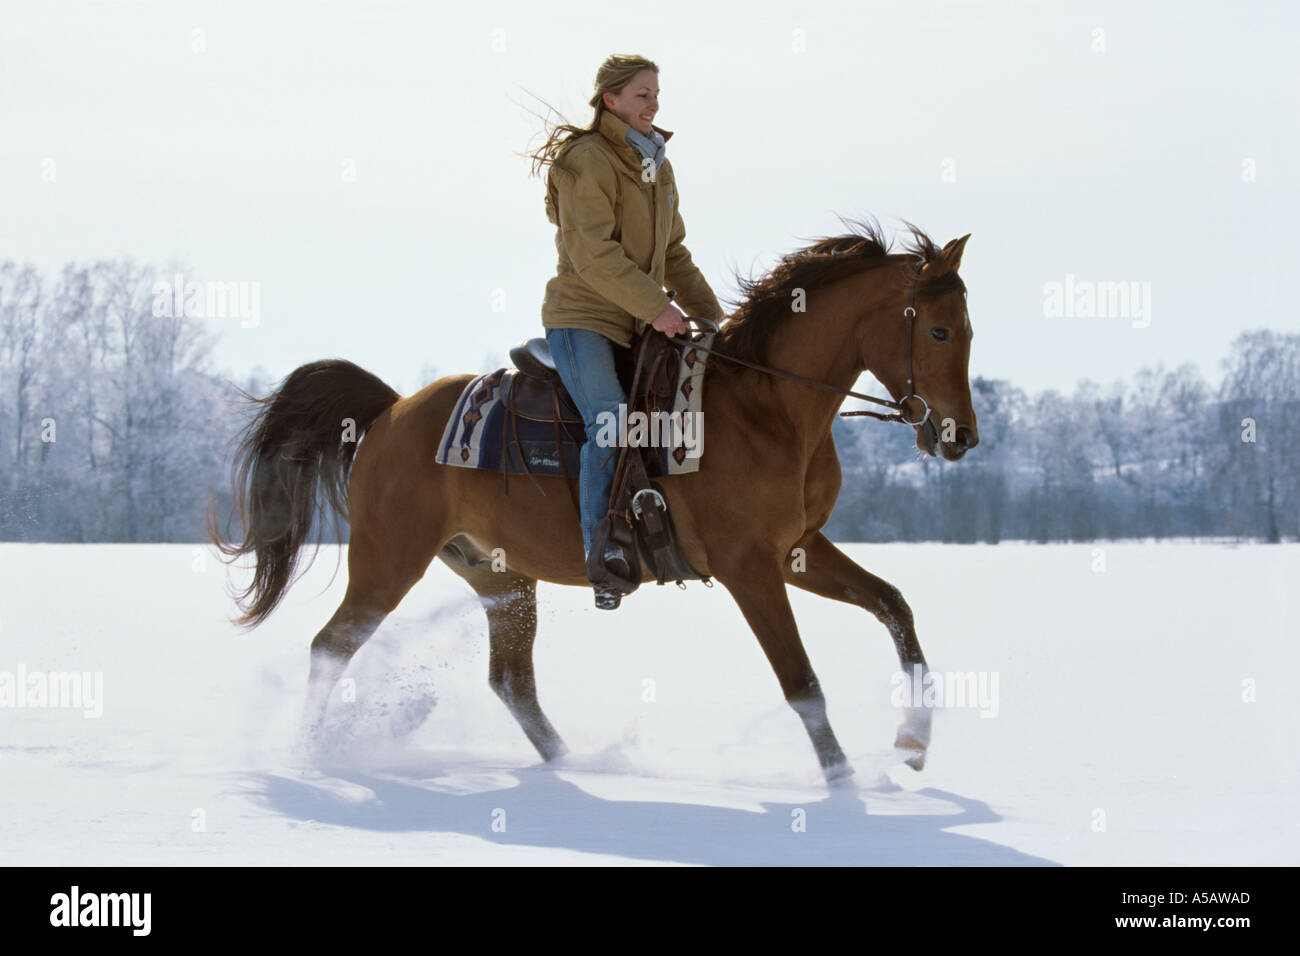 Young Rider Riding Western Style On Back Of An Arabian Horse Stock Photo Alamy